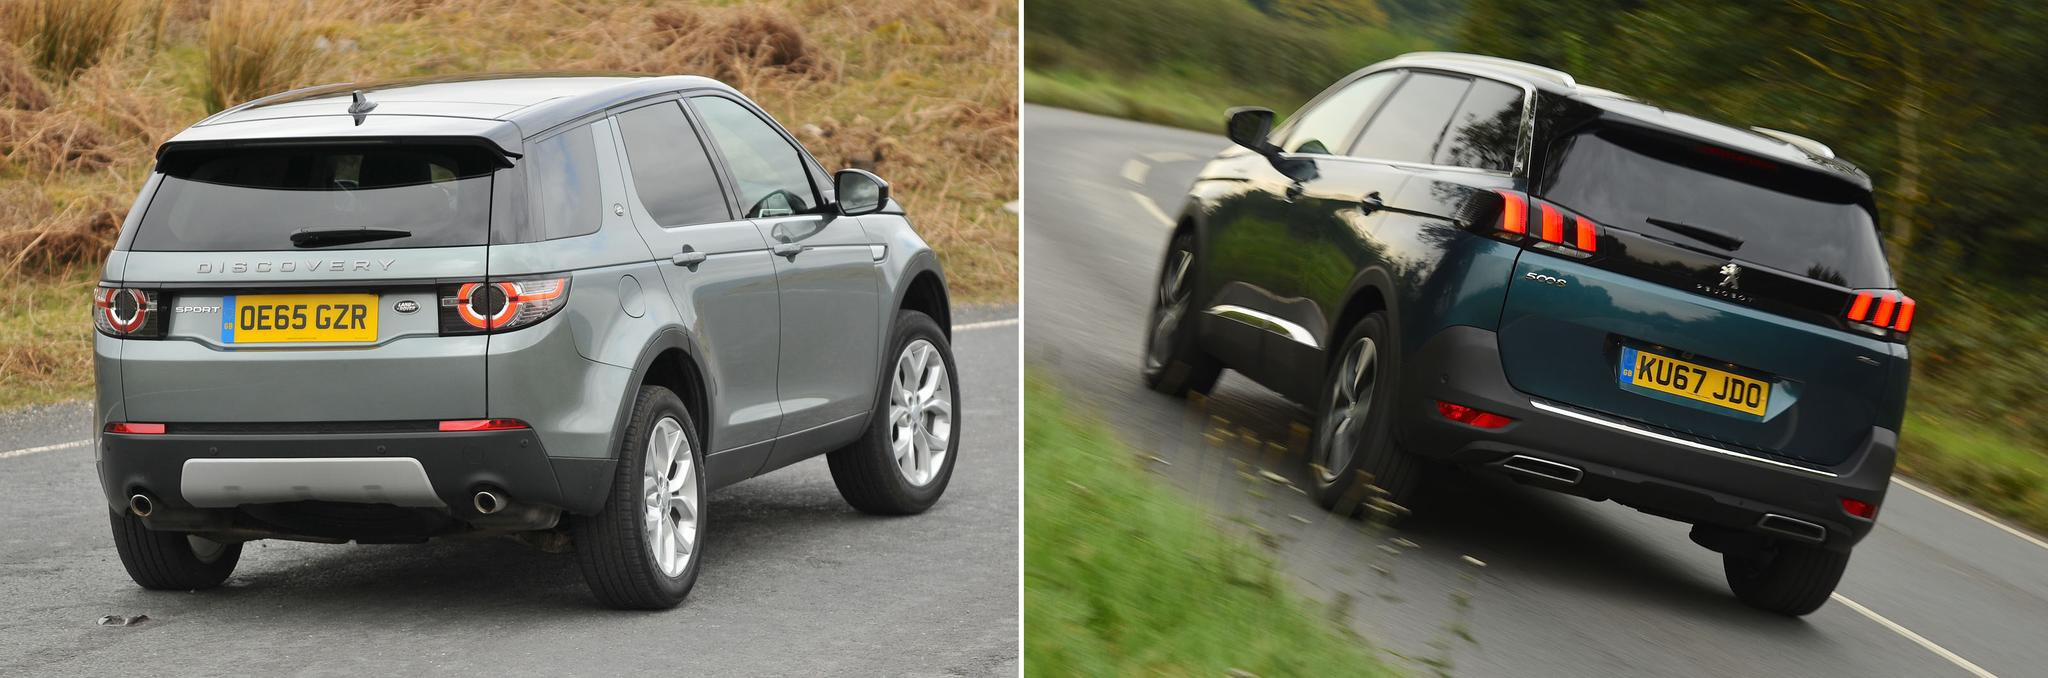 New Peugeot 5008 vs used Land Rover Discovery Sport: which is best?